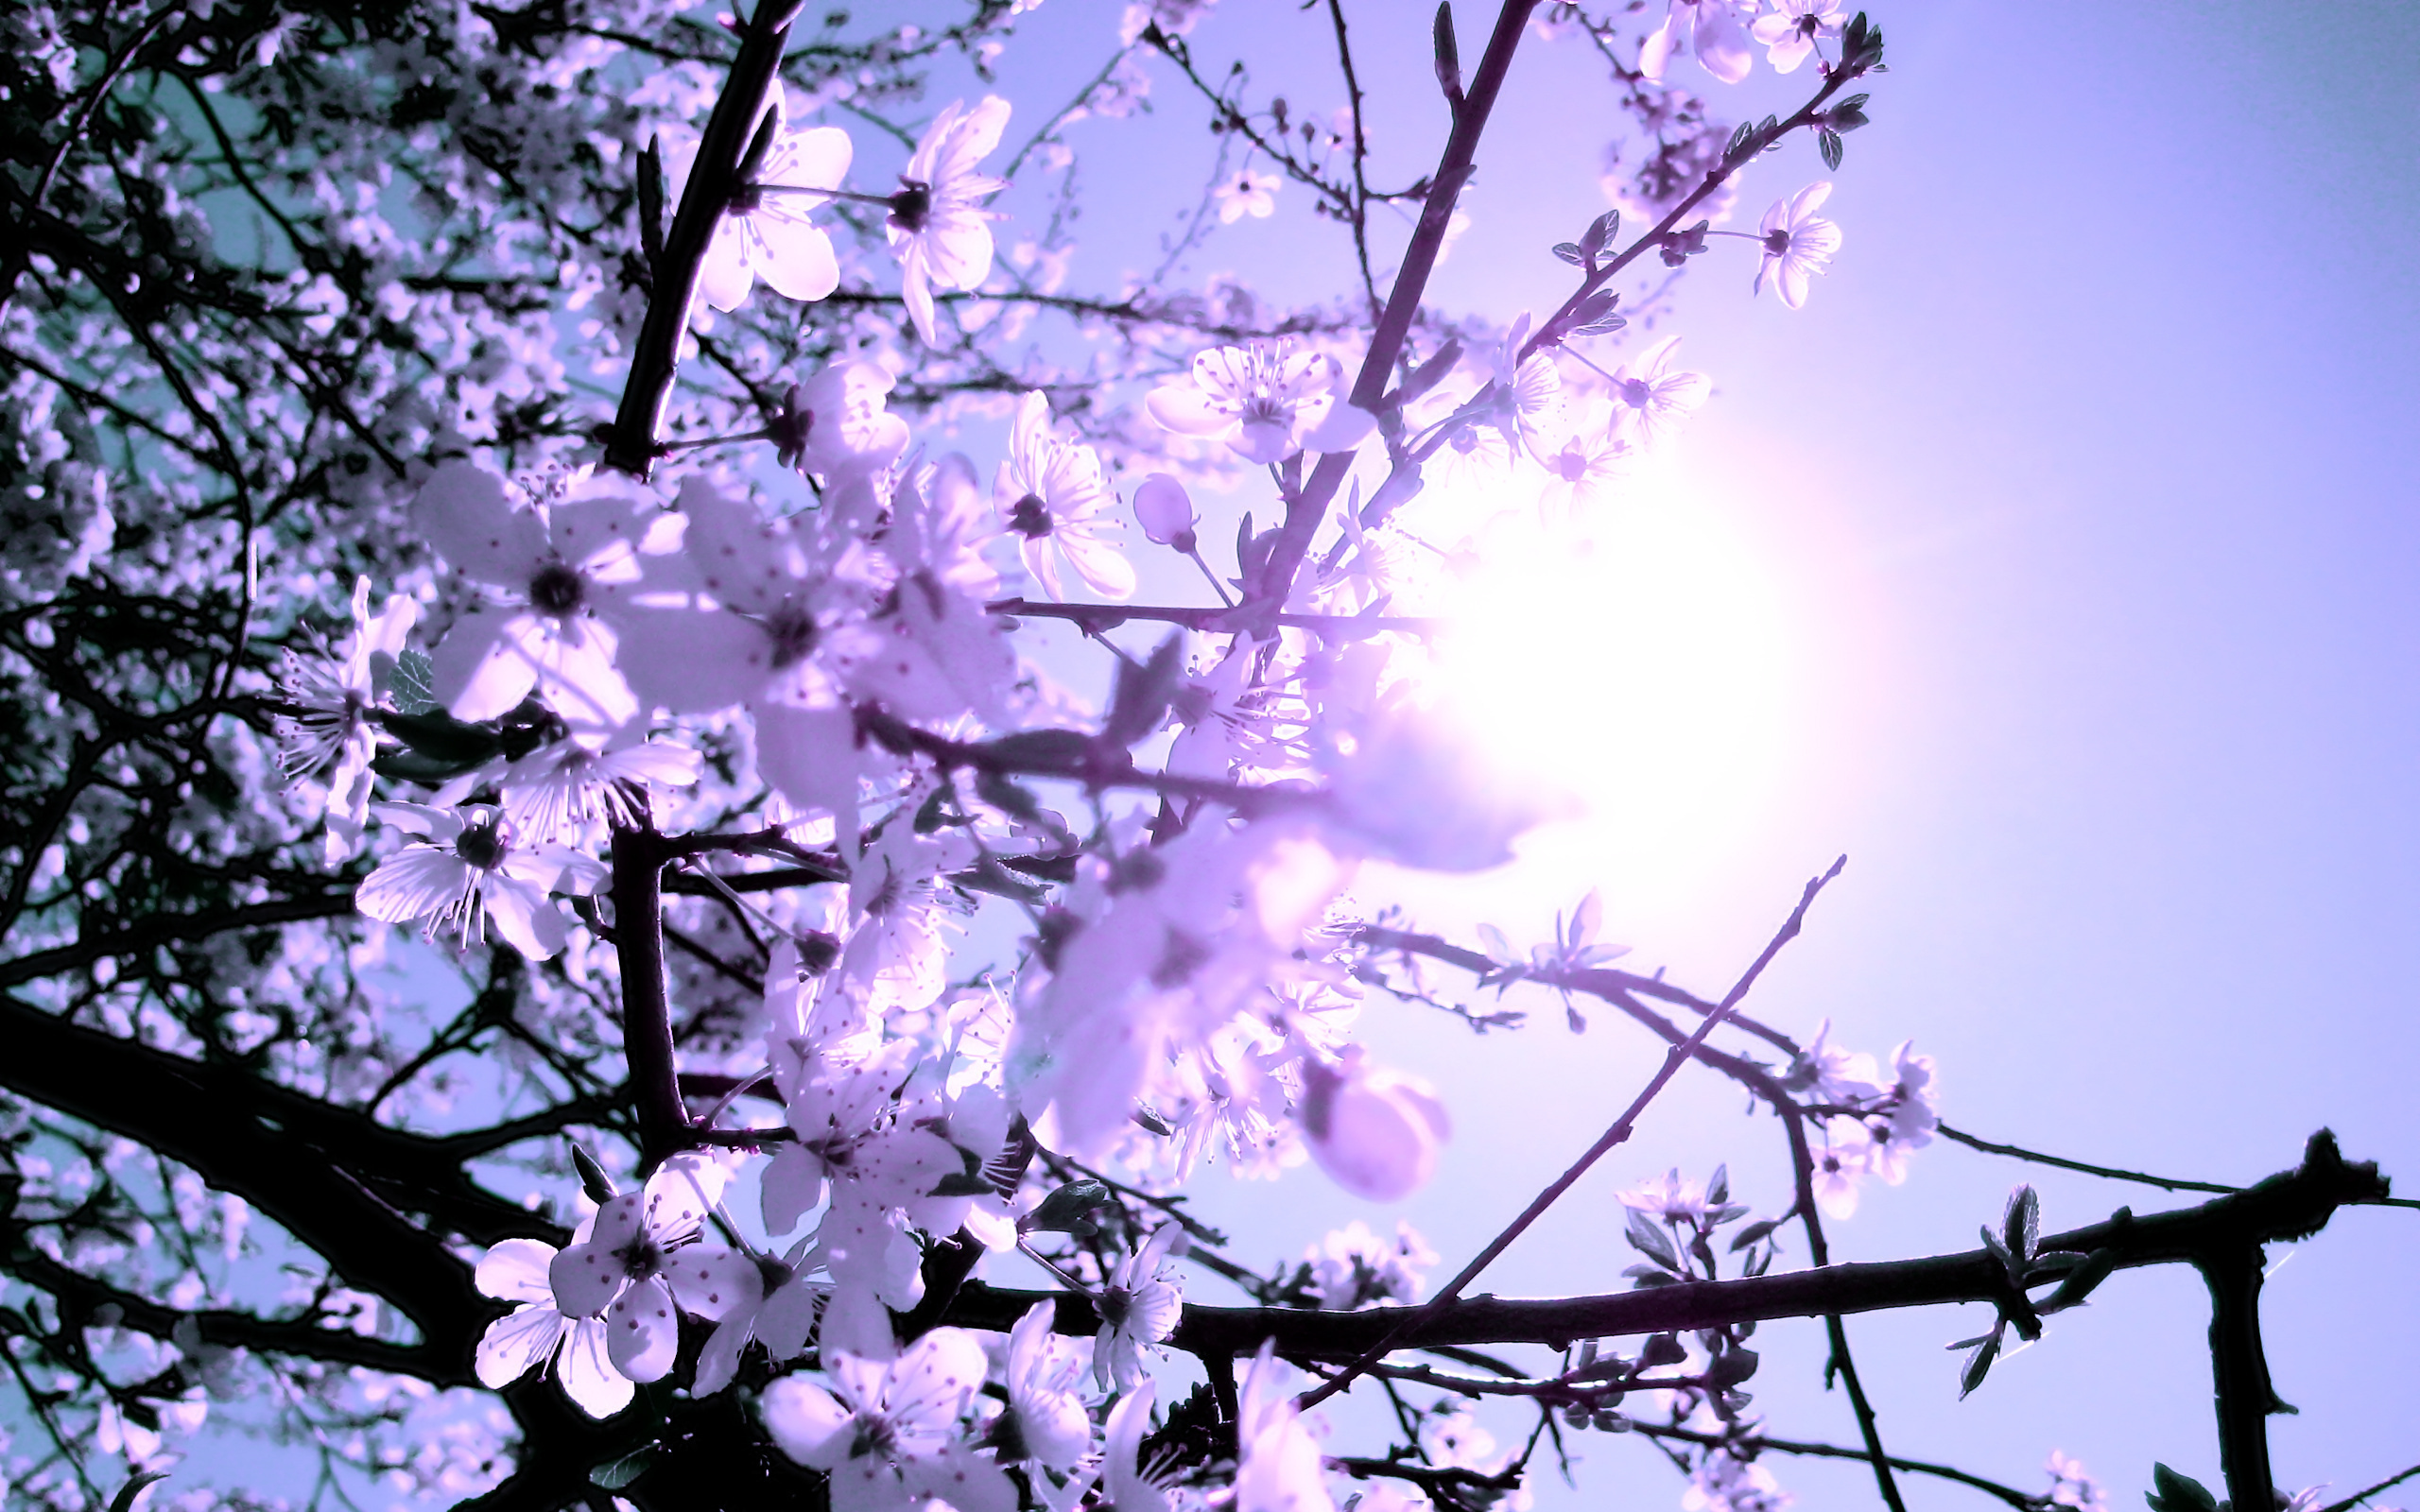 Tree Spring Flowers Branches Blossoms Wallpaper 2560x1600 136226